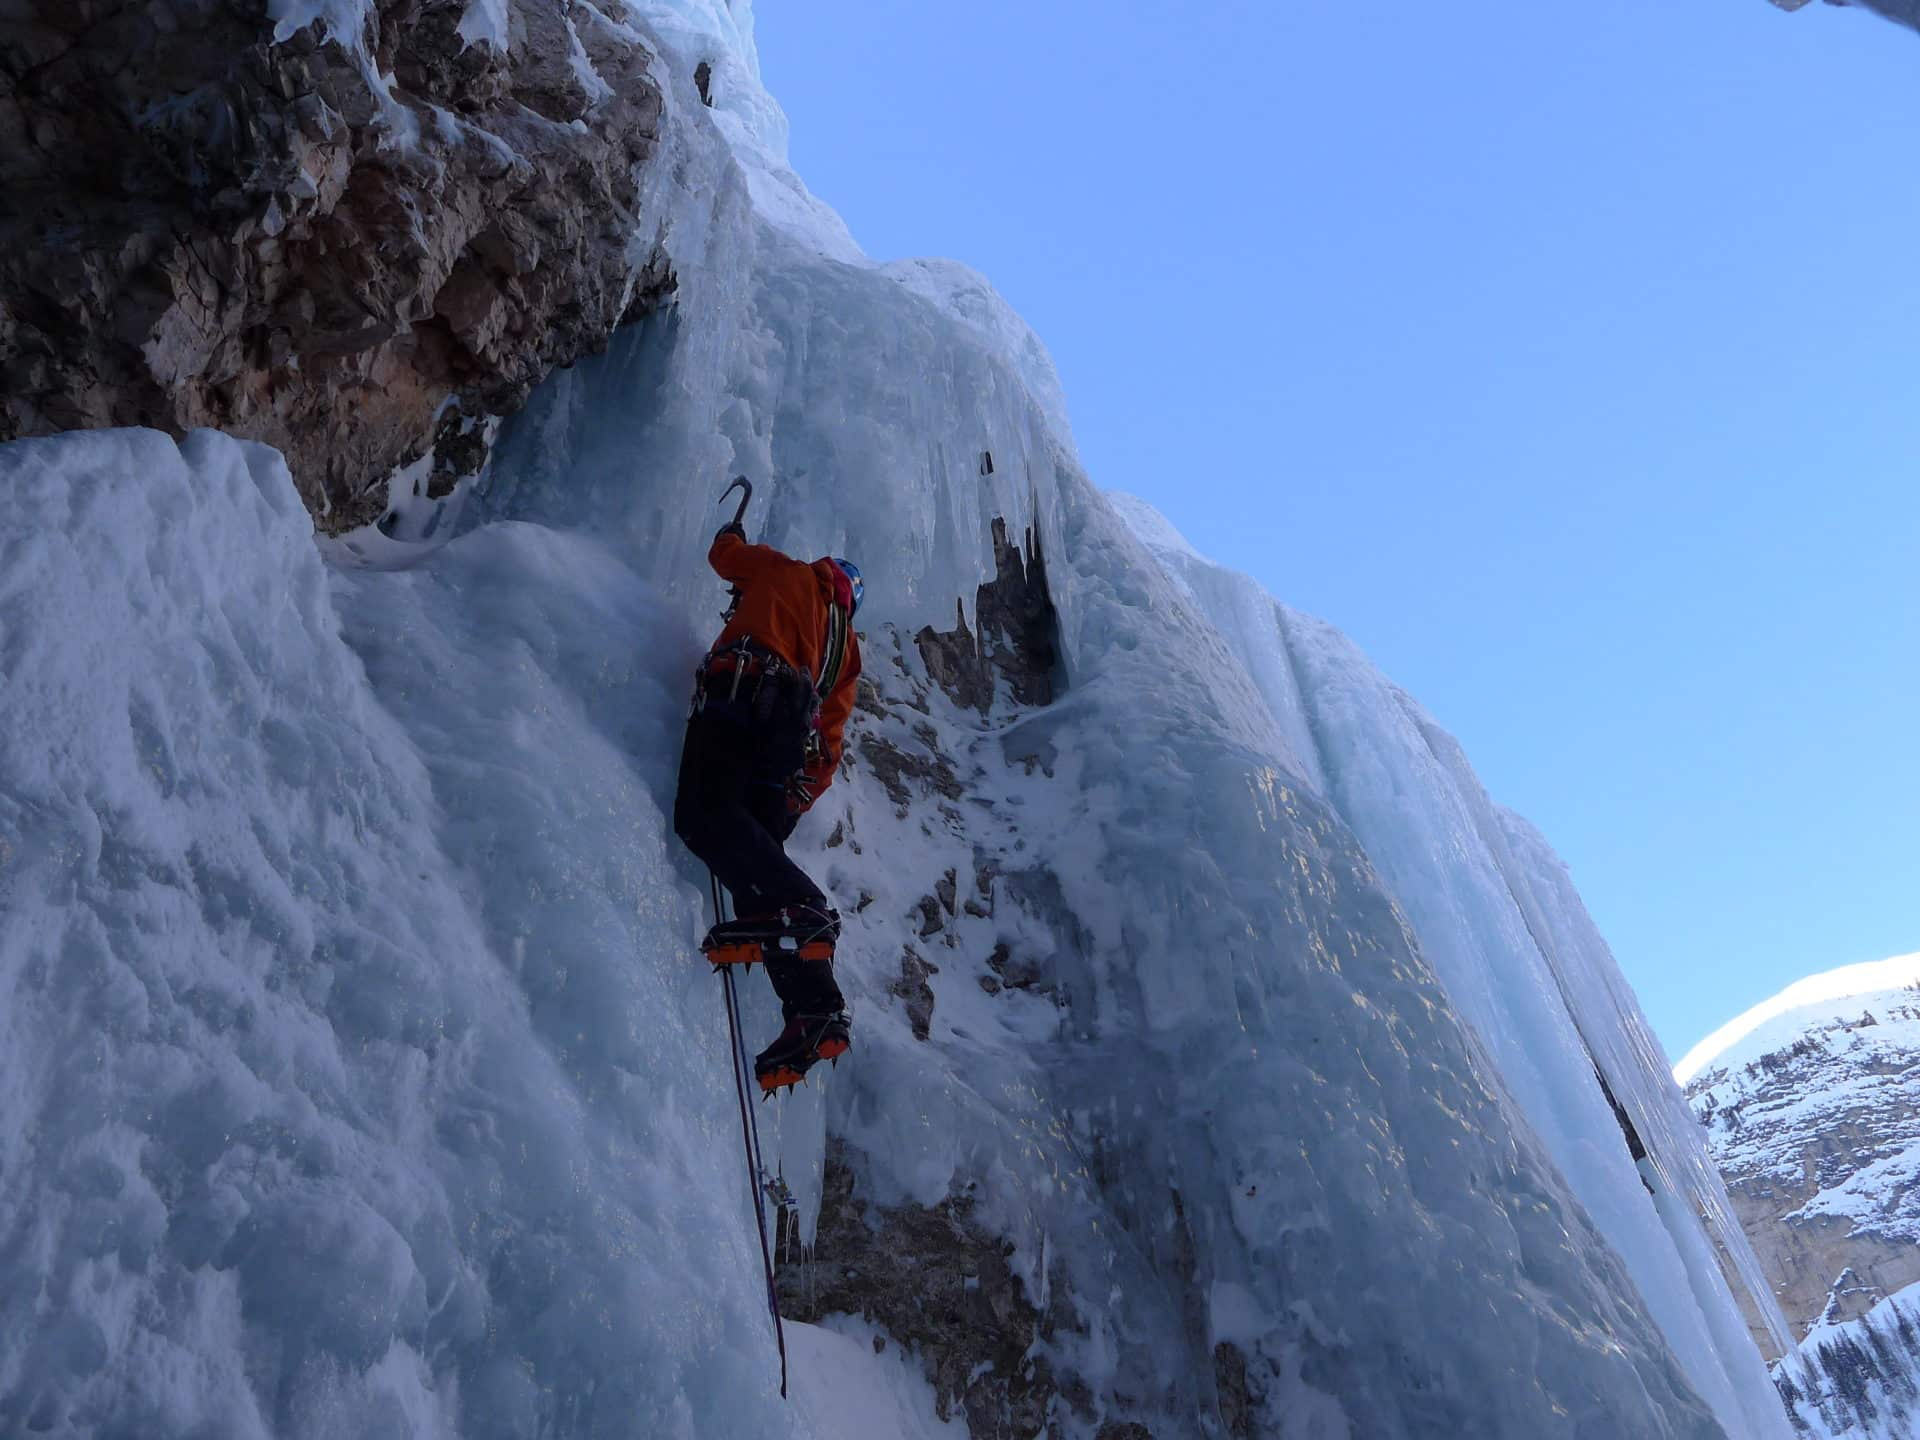 Ice climbing in Gasteiner with a guide